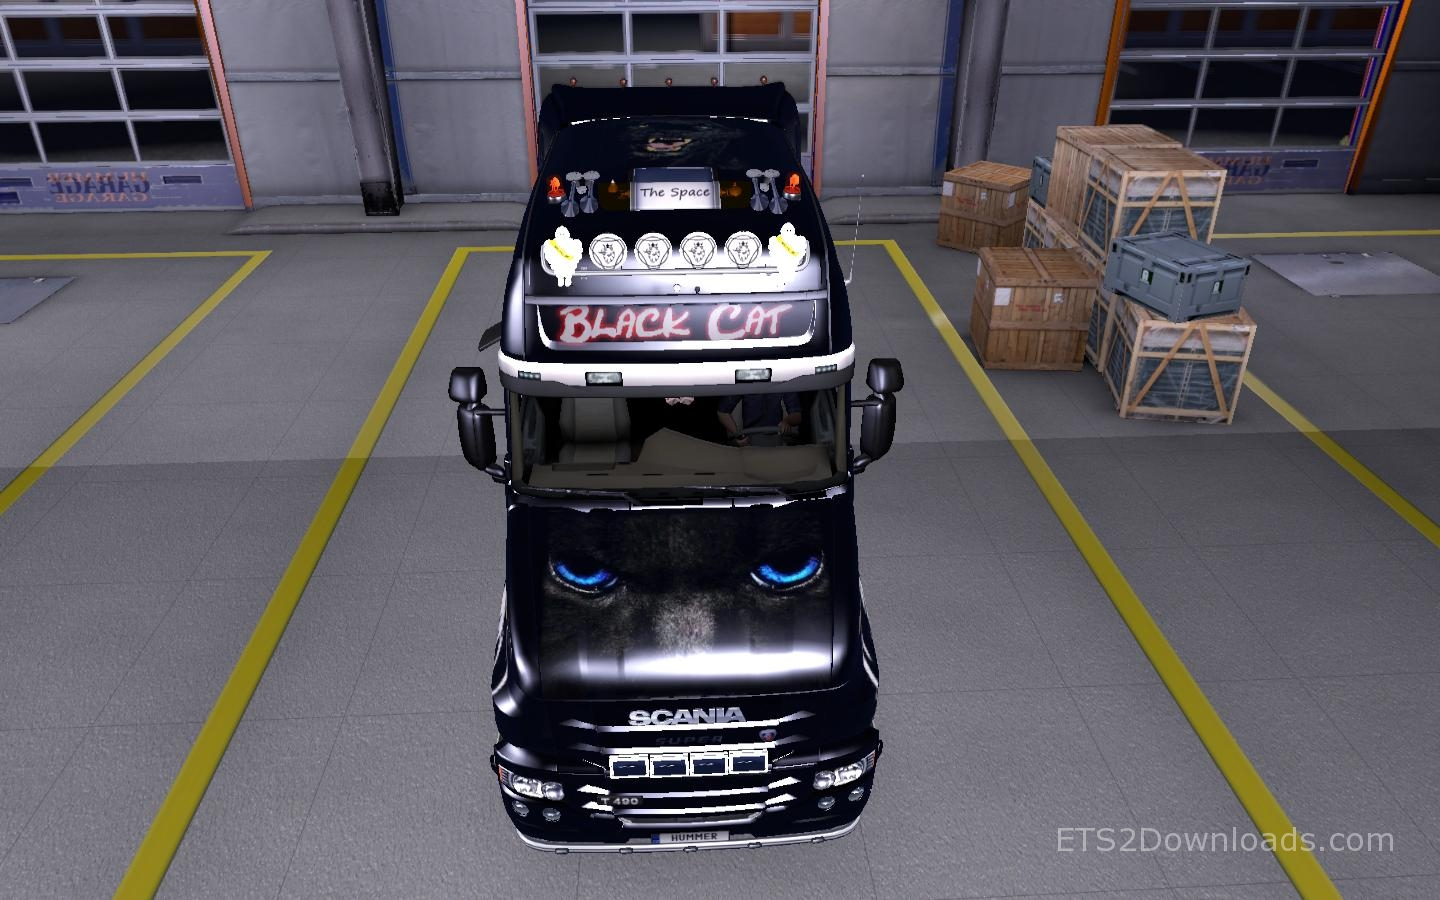 black-cat-skin-scania-t-ets2-2